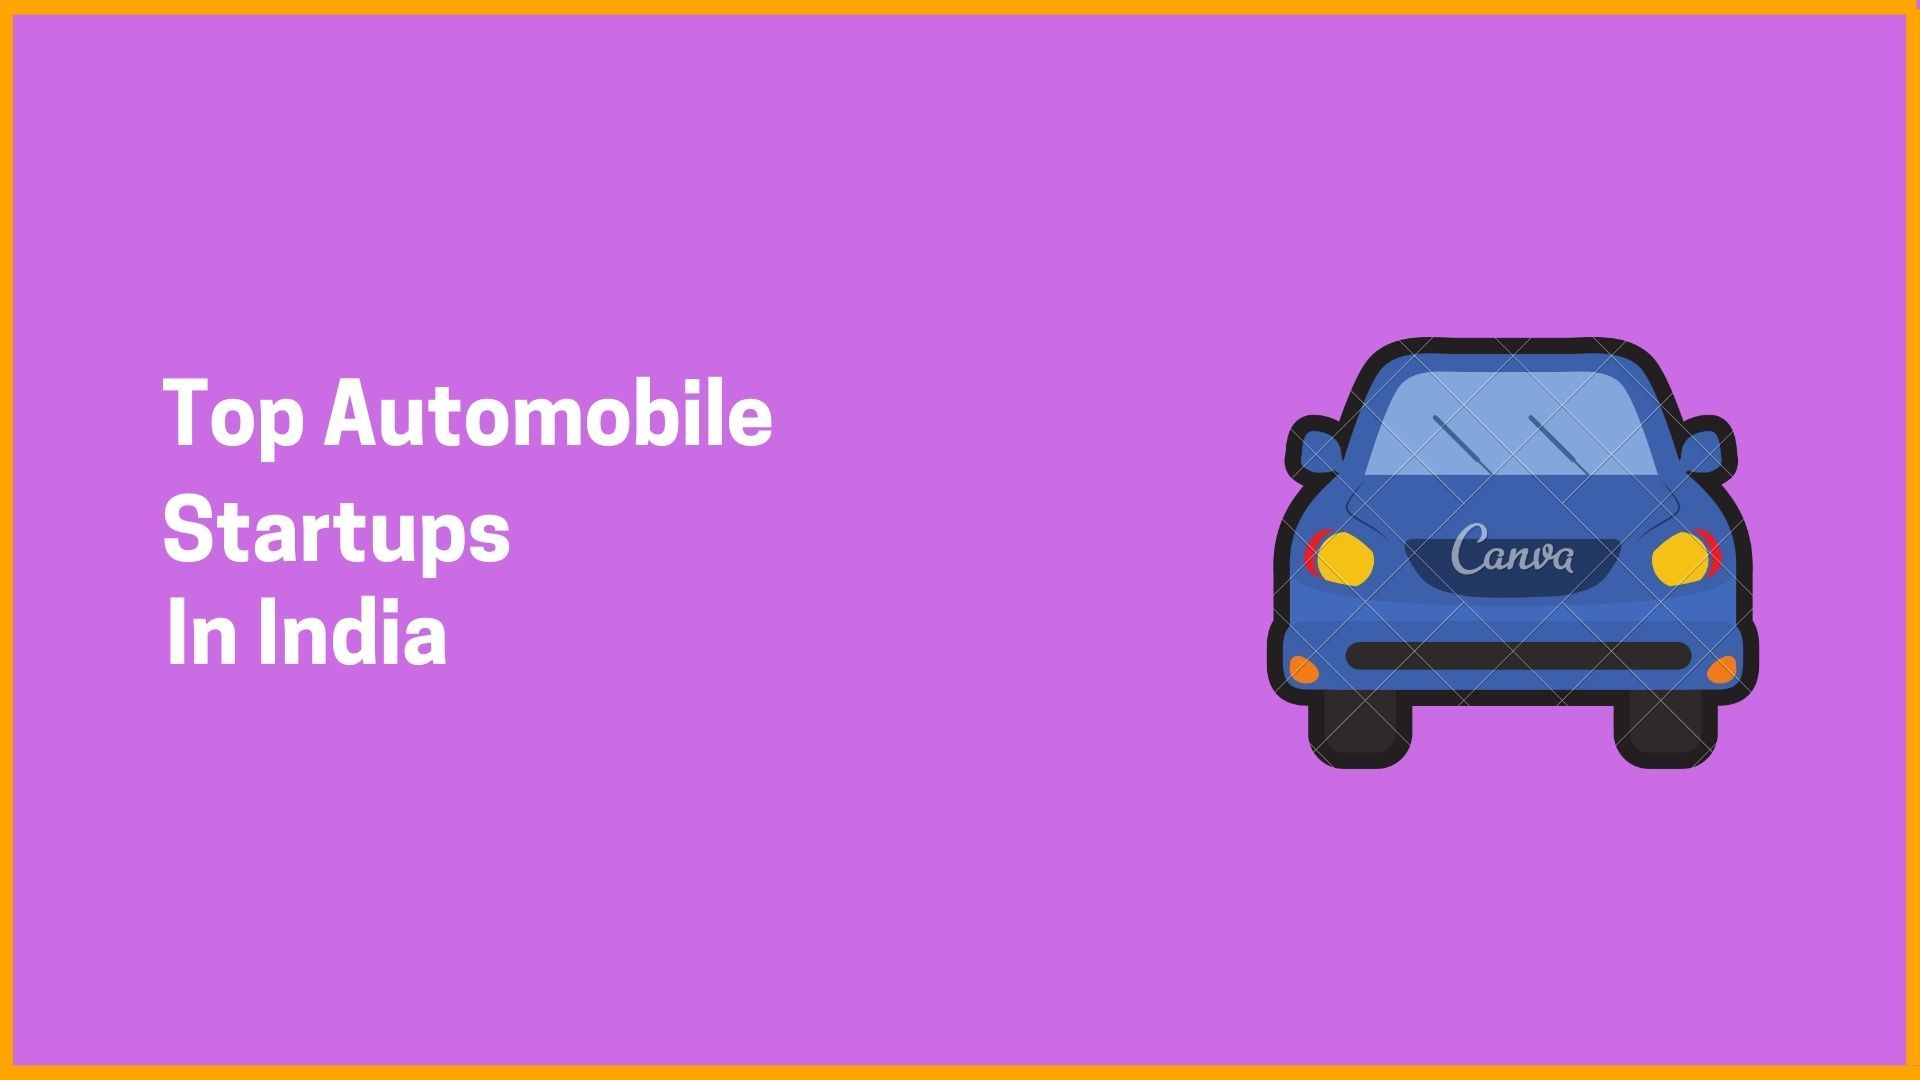 Top Automobile Startups In India